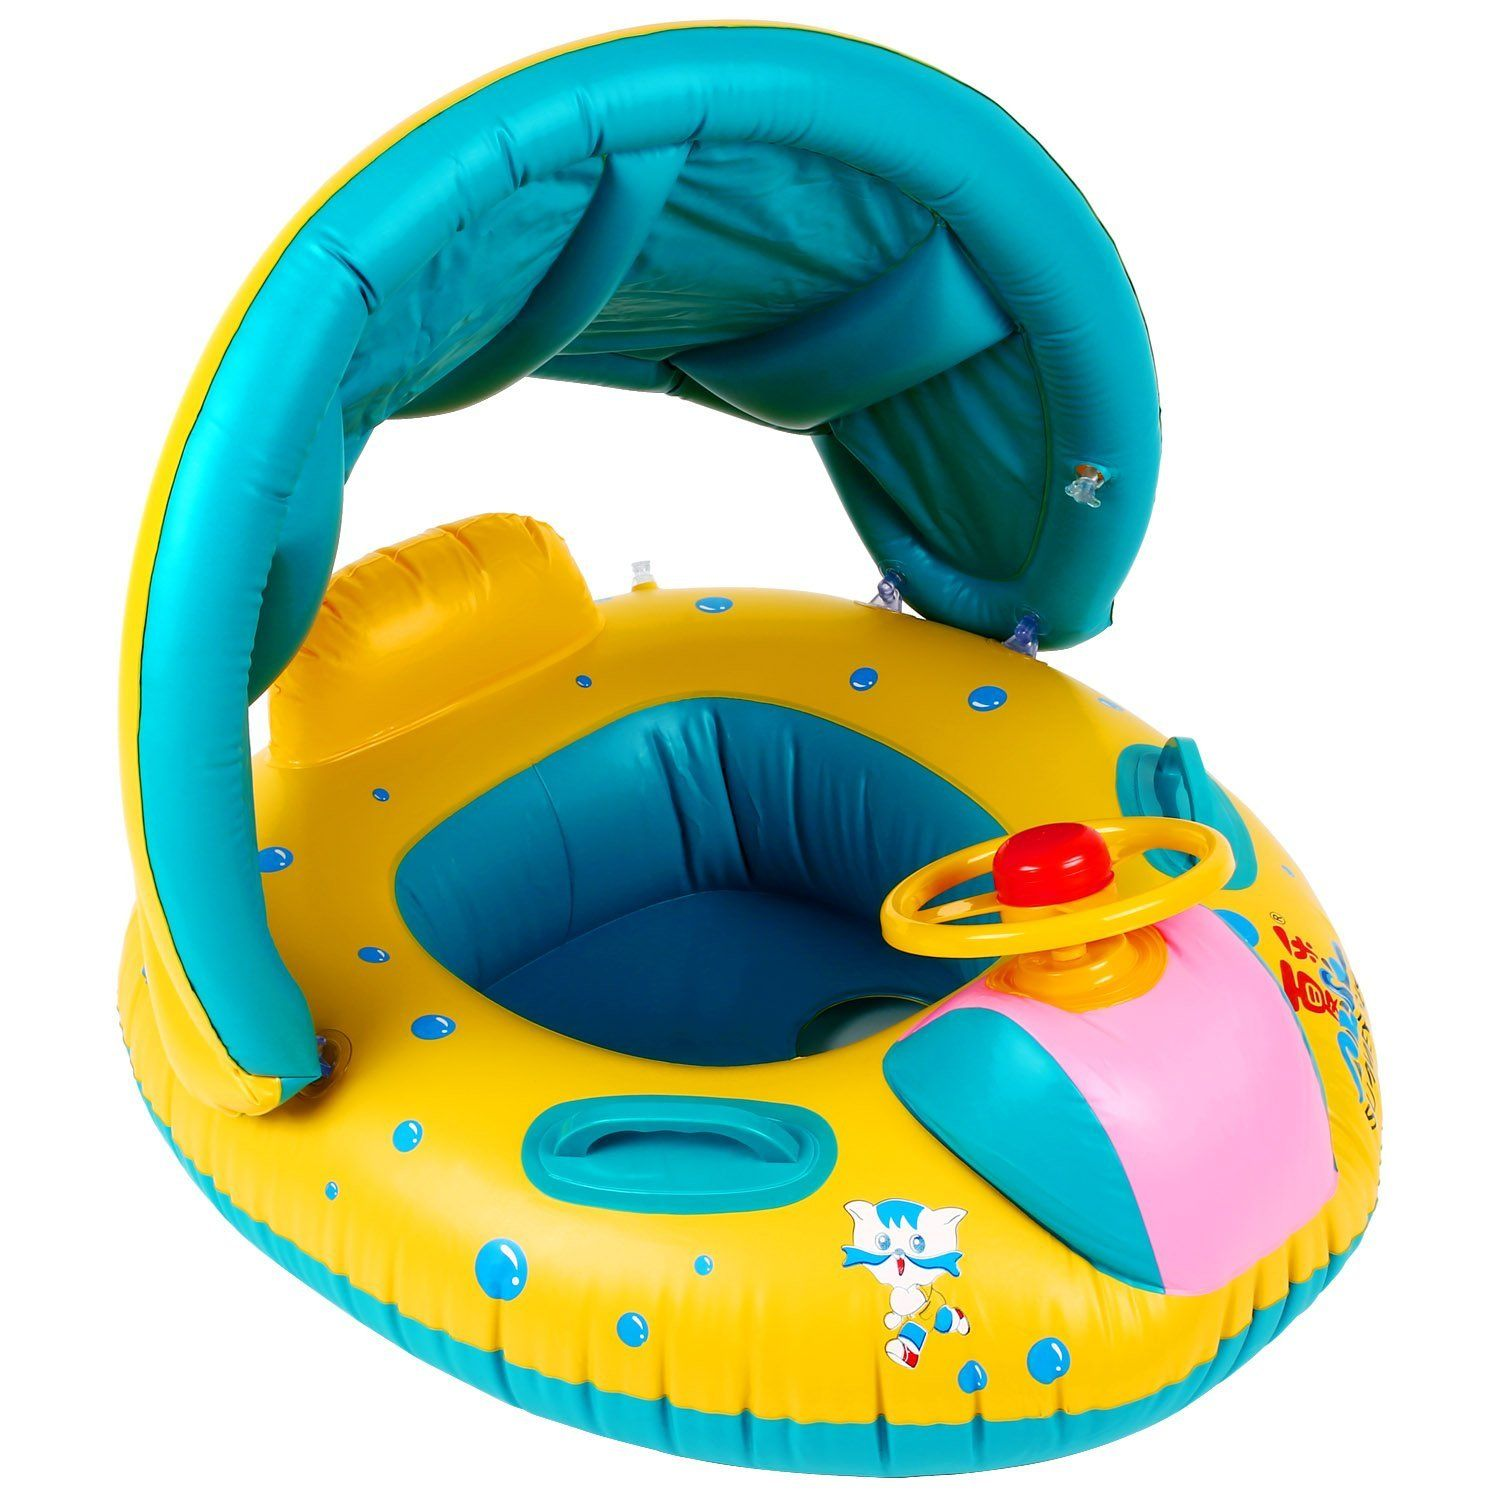 Peradix Pool Floats Baby Float Water Toys with Inflatable Canopy